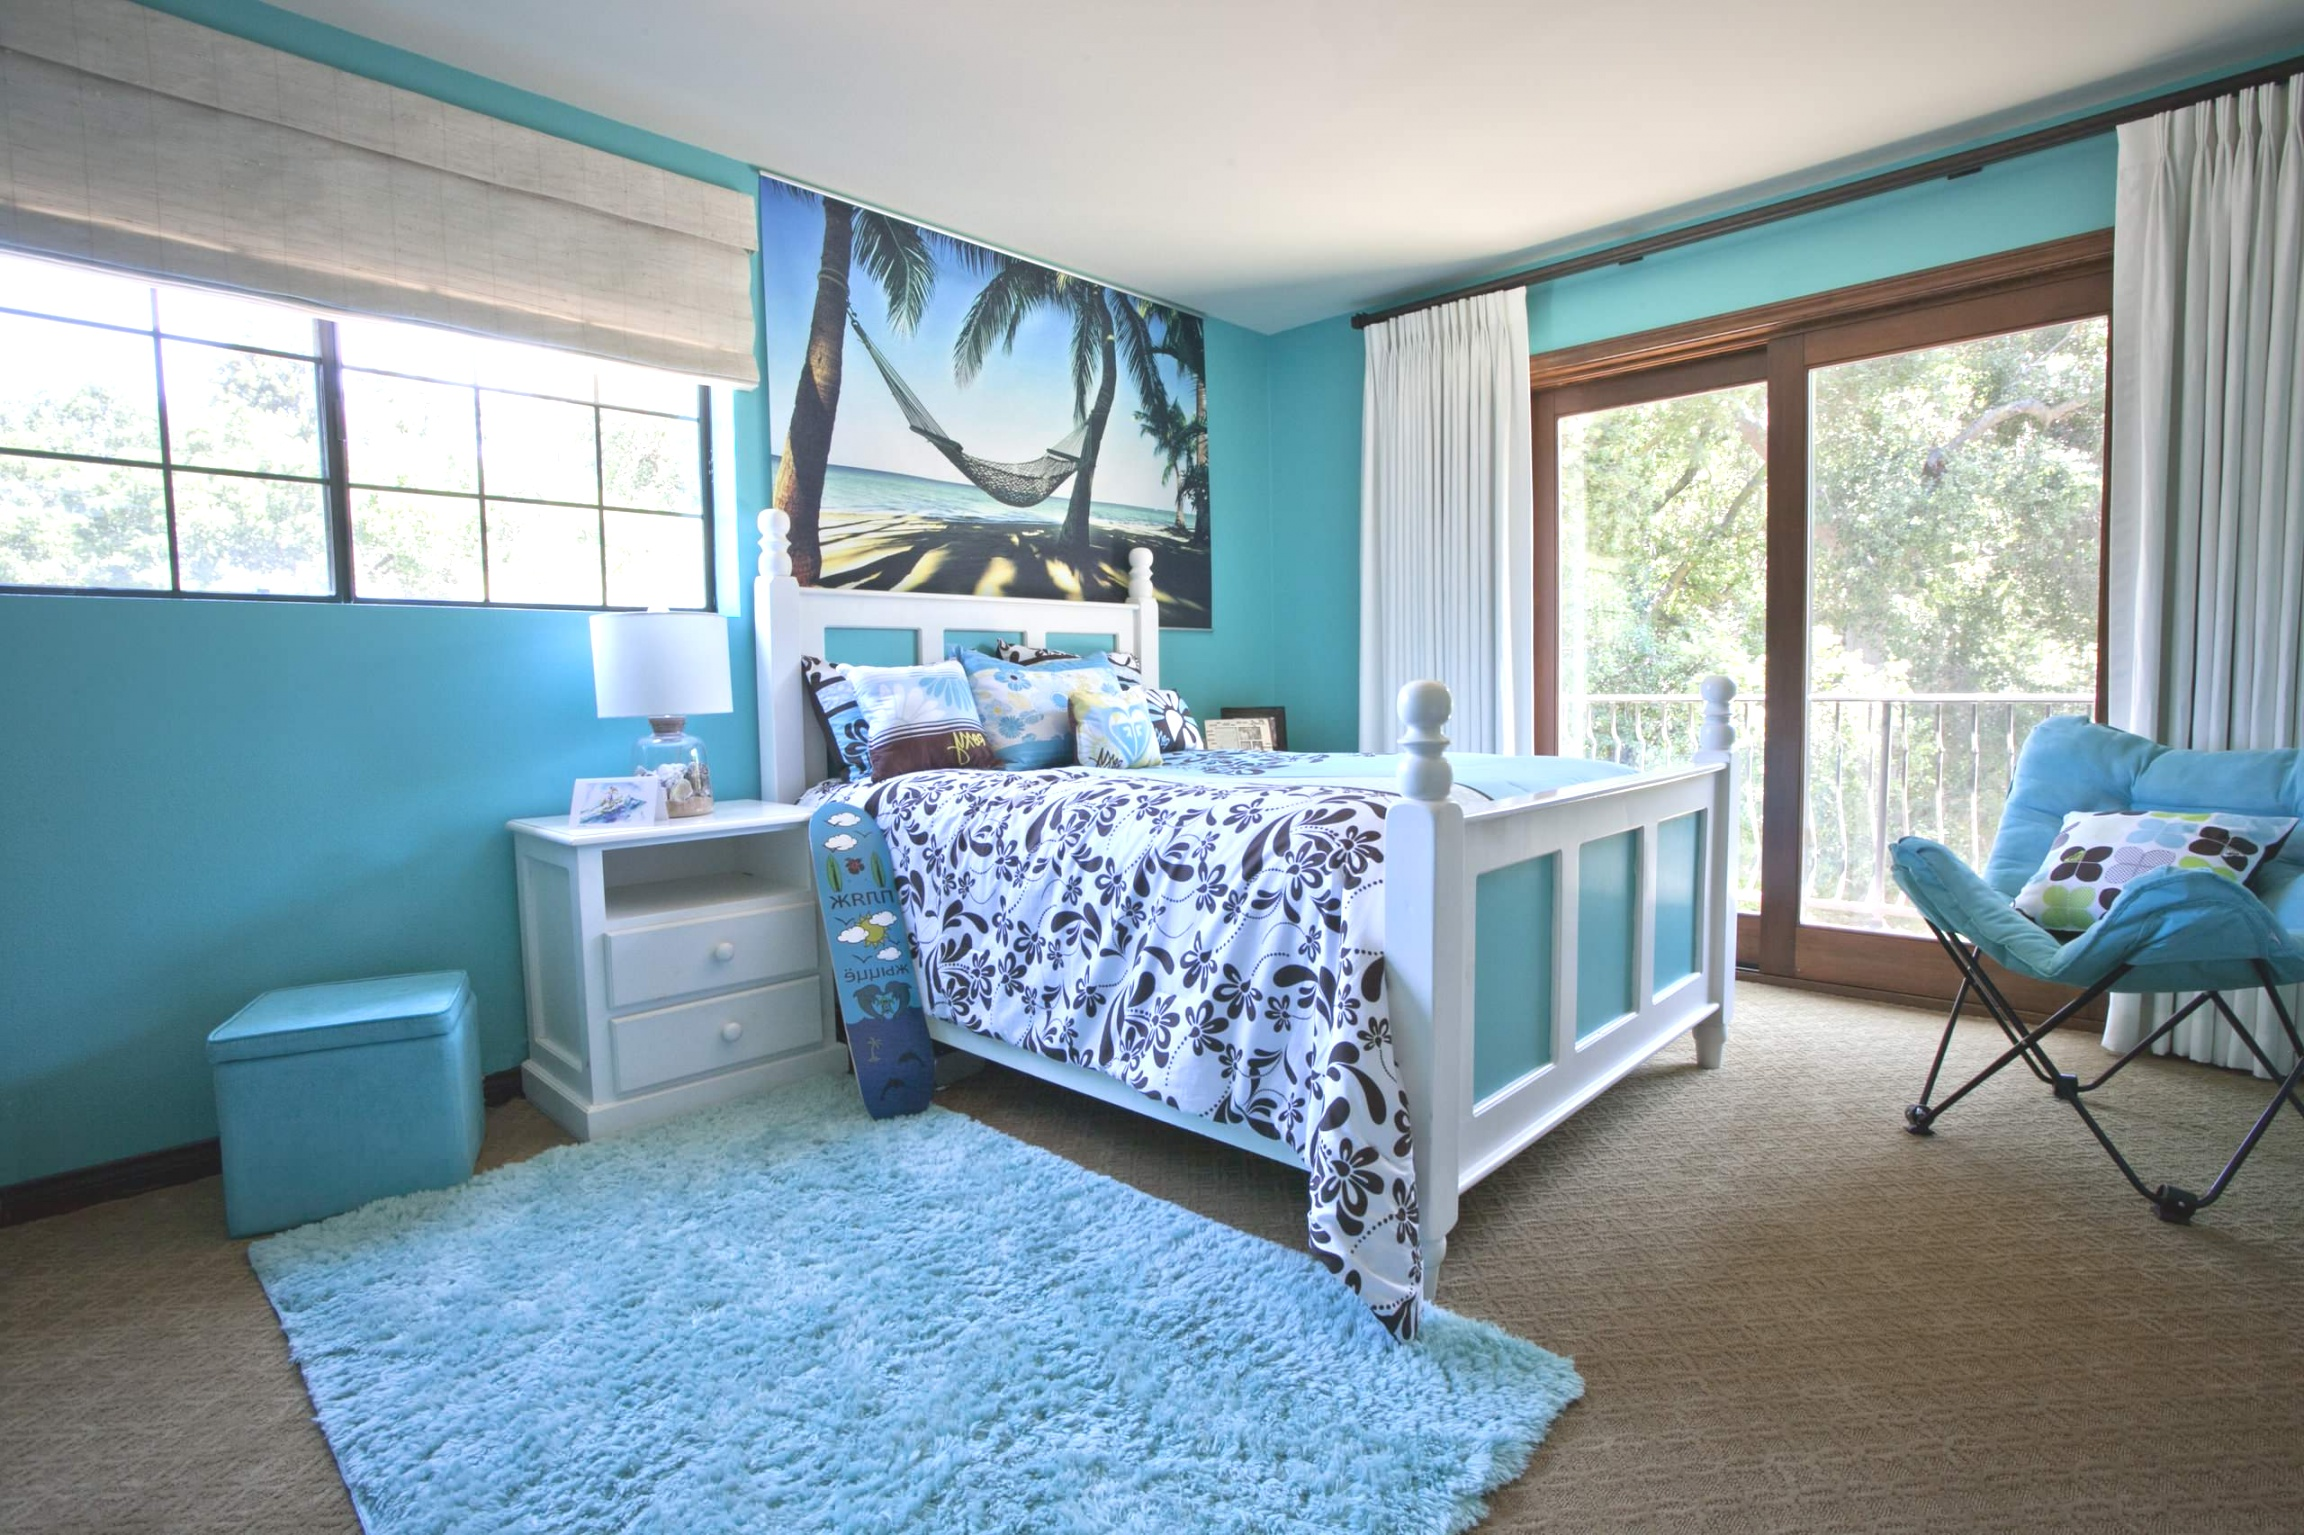 beach theme decor | Bedroom : Adorable Beach Theme Decor For Living Room Beach Themed ..